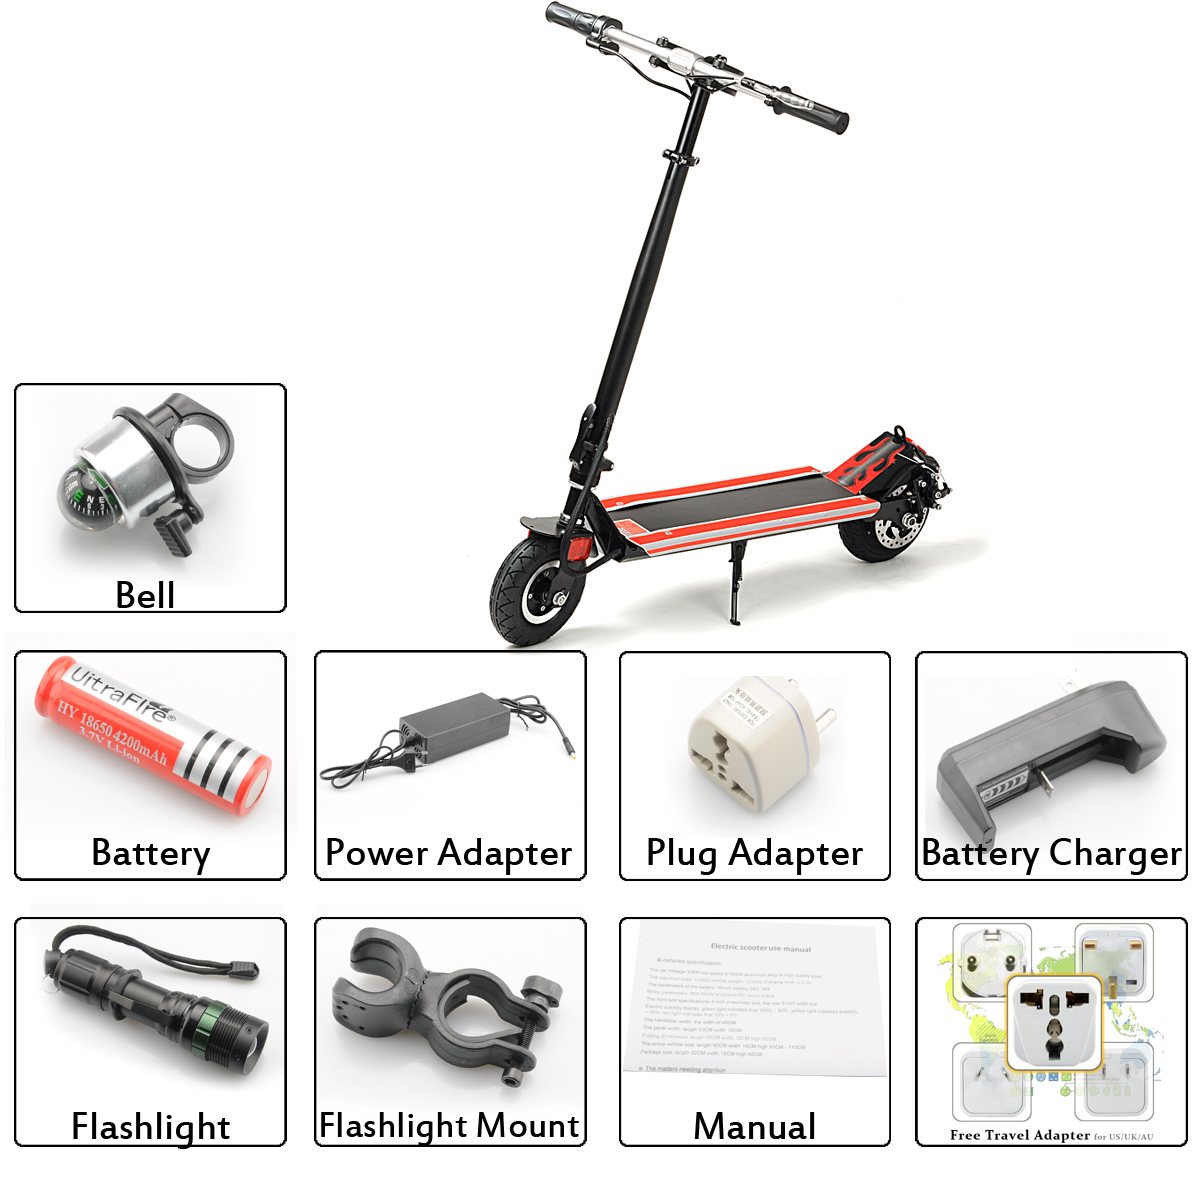 images/hot-sale-electronics/Folding-Electric-Scooter-E-Scootz-350W-Motor-8800mAh-Battery-37km-h-Speeds-35km-Range-150kg-Max-Load-plusbuyer_91.jpg